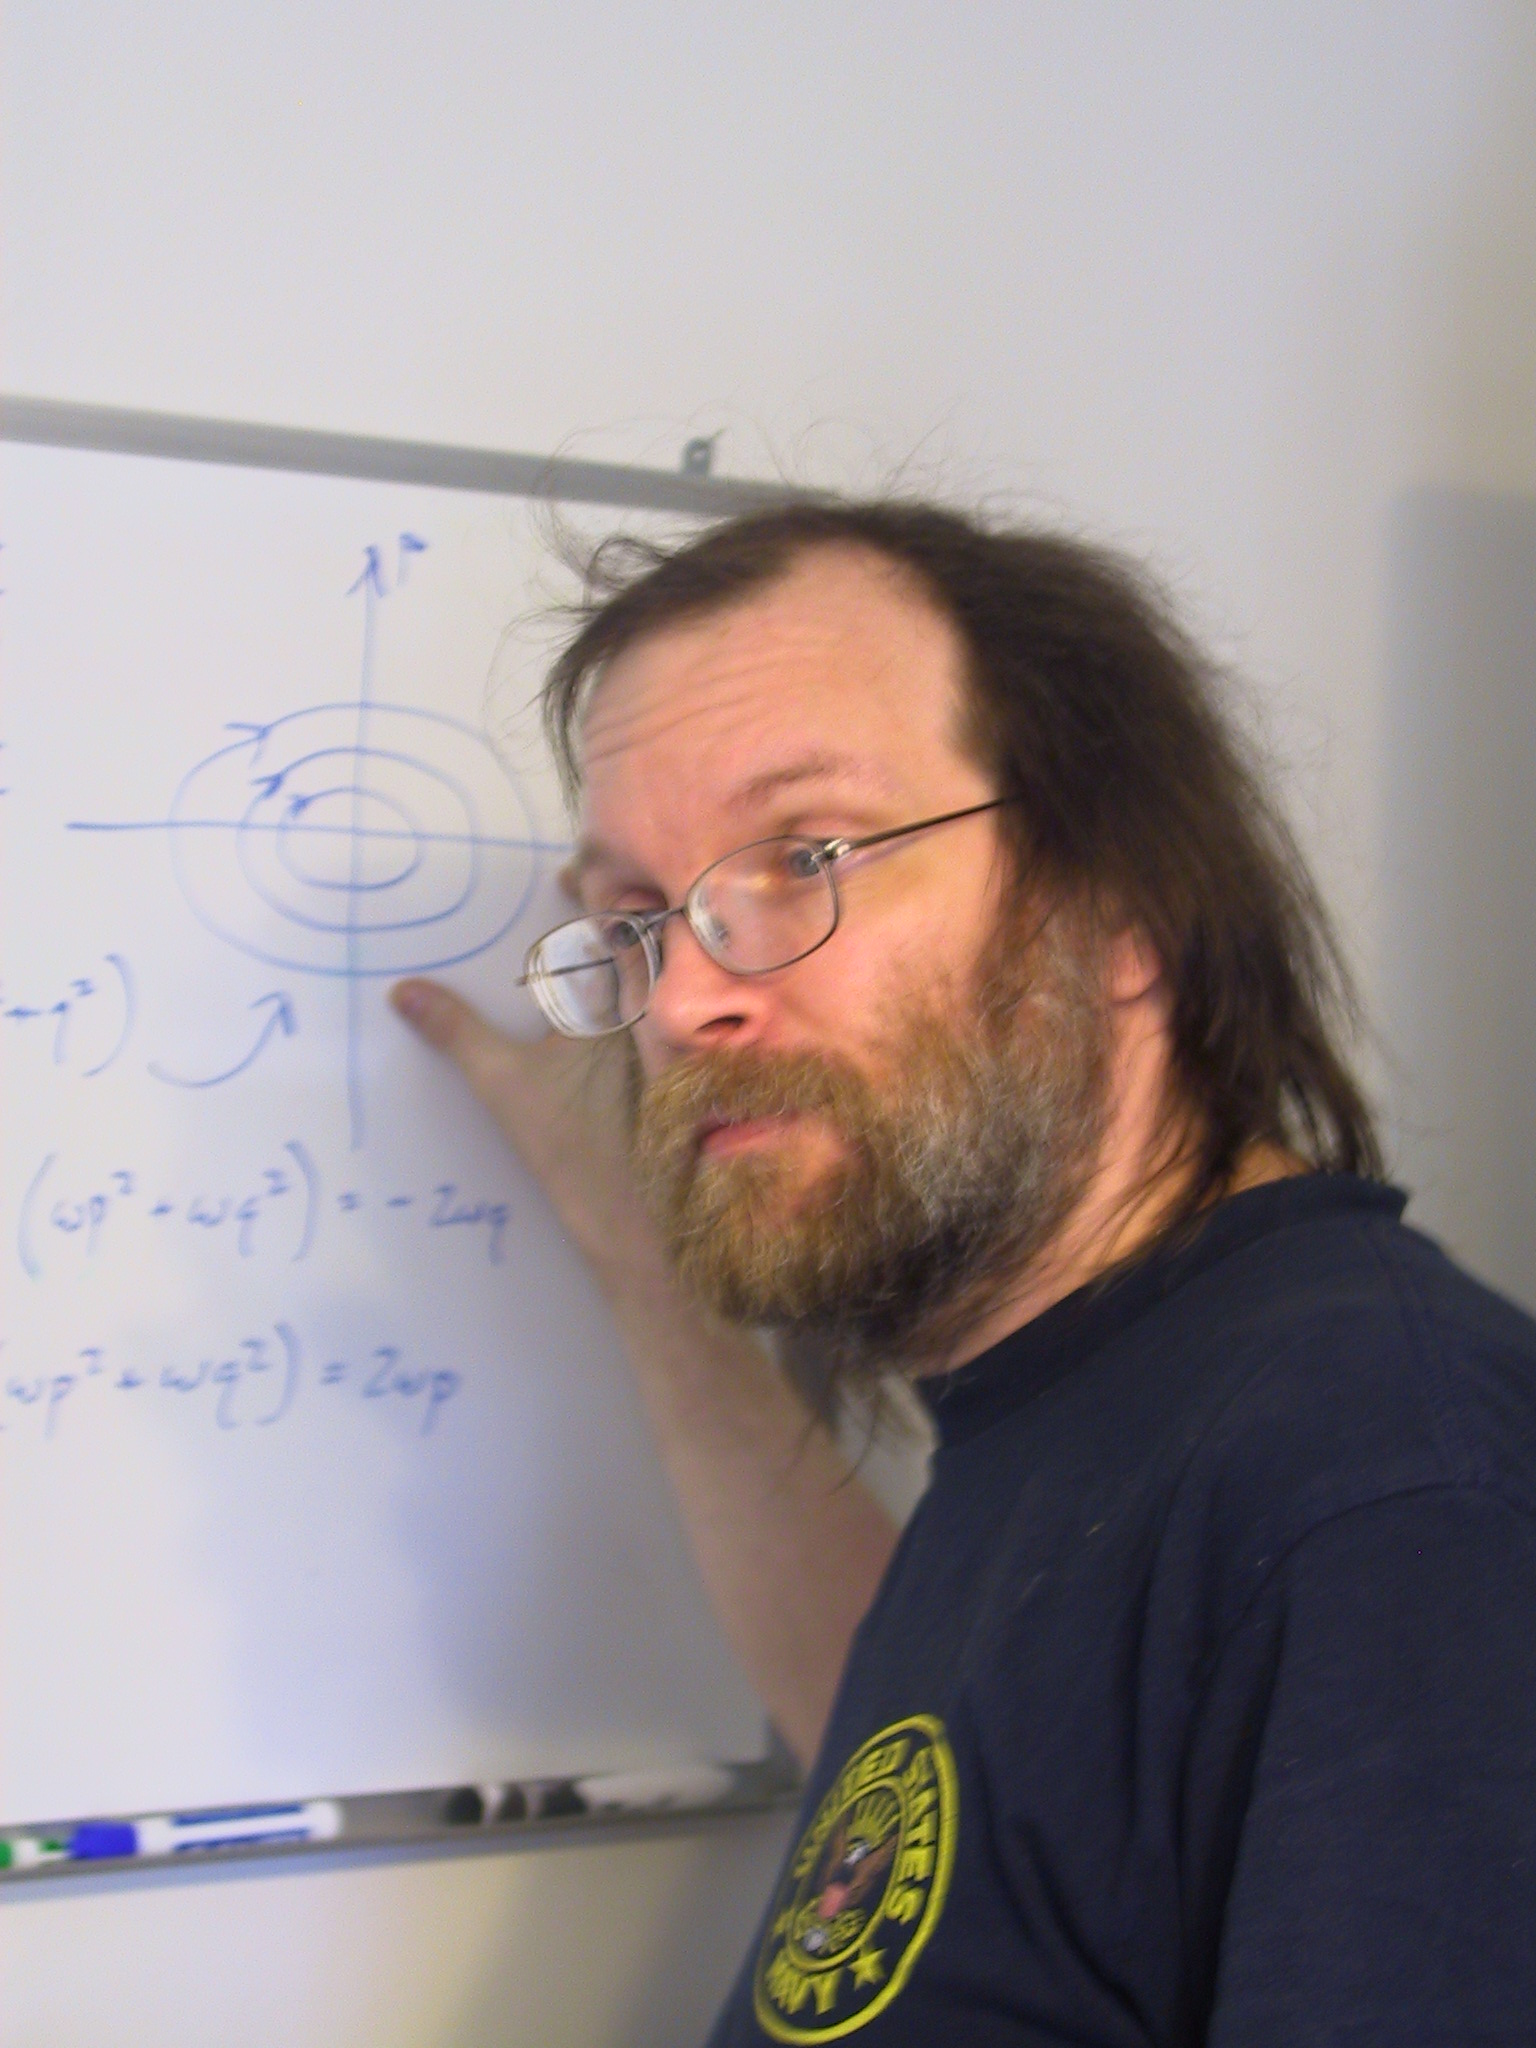 George Hrabovsky, co-author of The Theoretical Minimum